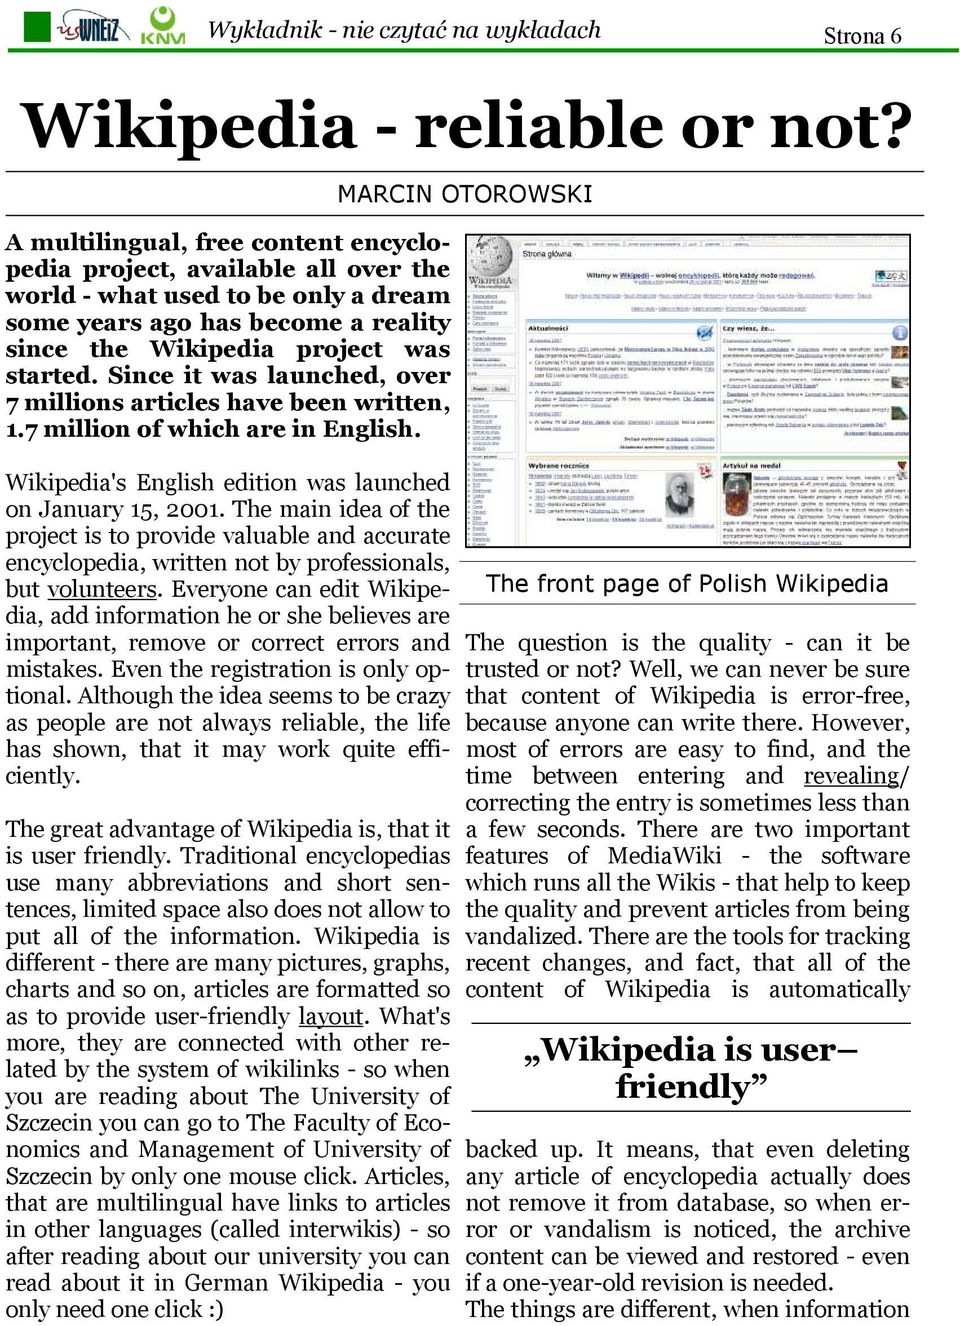 Since it was launched, over 7 millions articles have been written, 1.7 million of which are in English. Wikipedia's English edition was launched on January 15, 2001.